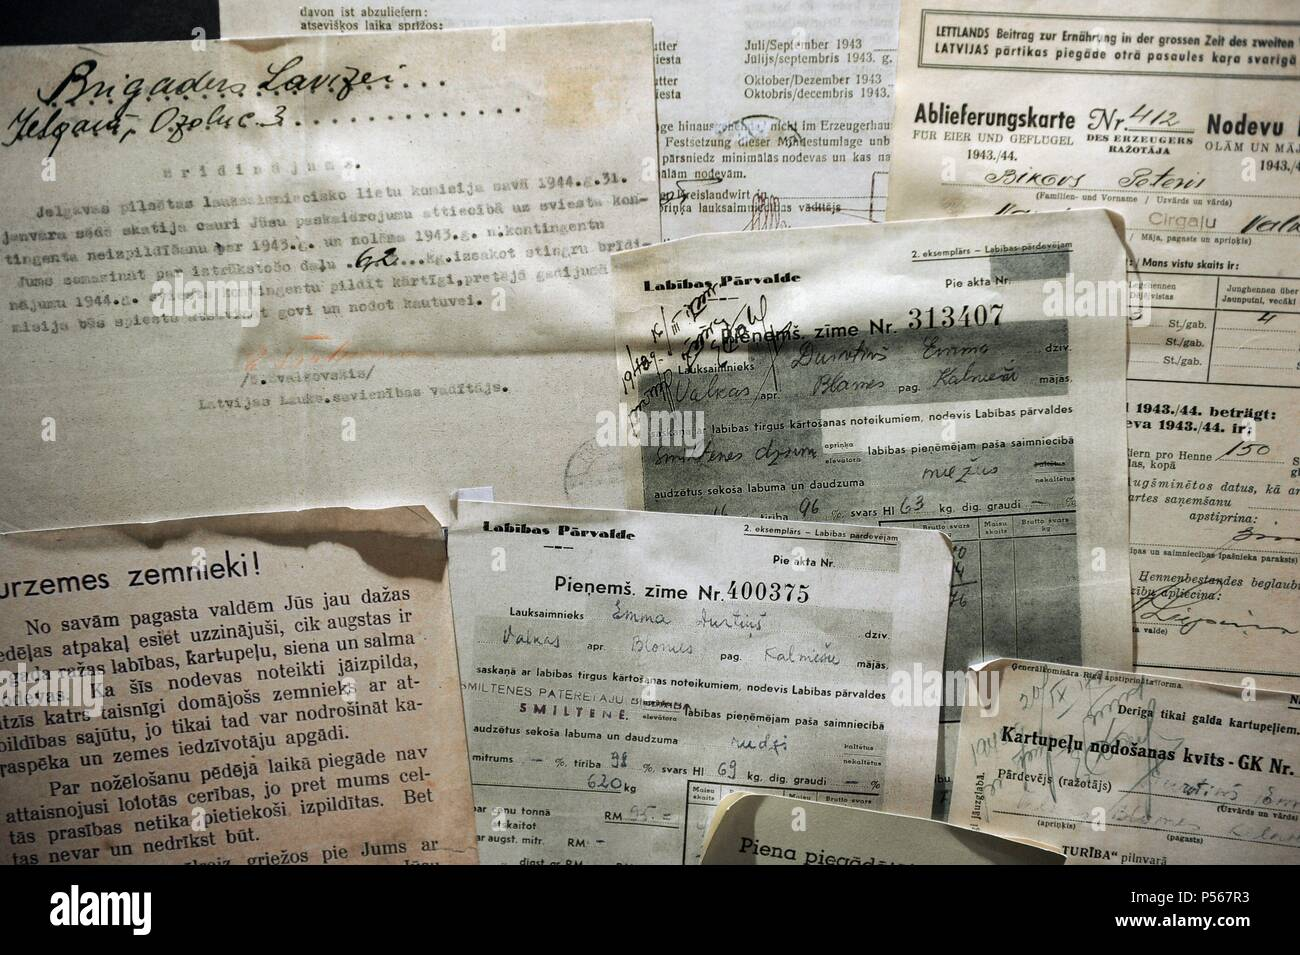 Latvia. Nazi occupation (1941-1944). Accounting documents for delivery of agricultural taxes and warning for non-delivery of taxes. Occupation Museum. Riga. Latvia. - Stock Image